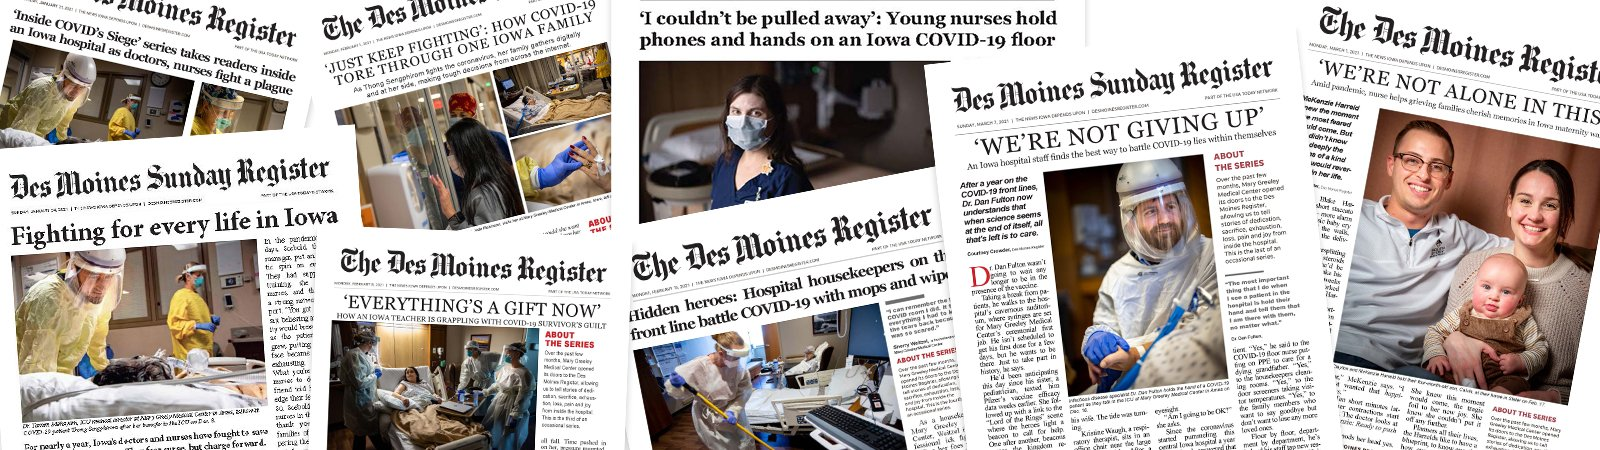 Over the past few months, Mary Greeley Medical Center opened its doors to the Des Moines Register, allowing us to tell stories of dedication, sacrifice, exhaustion, loss, pain and joy from inside the hospital.